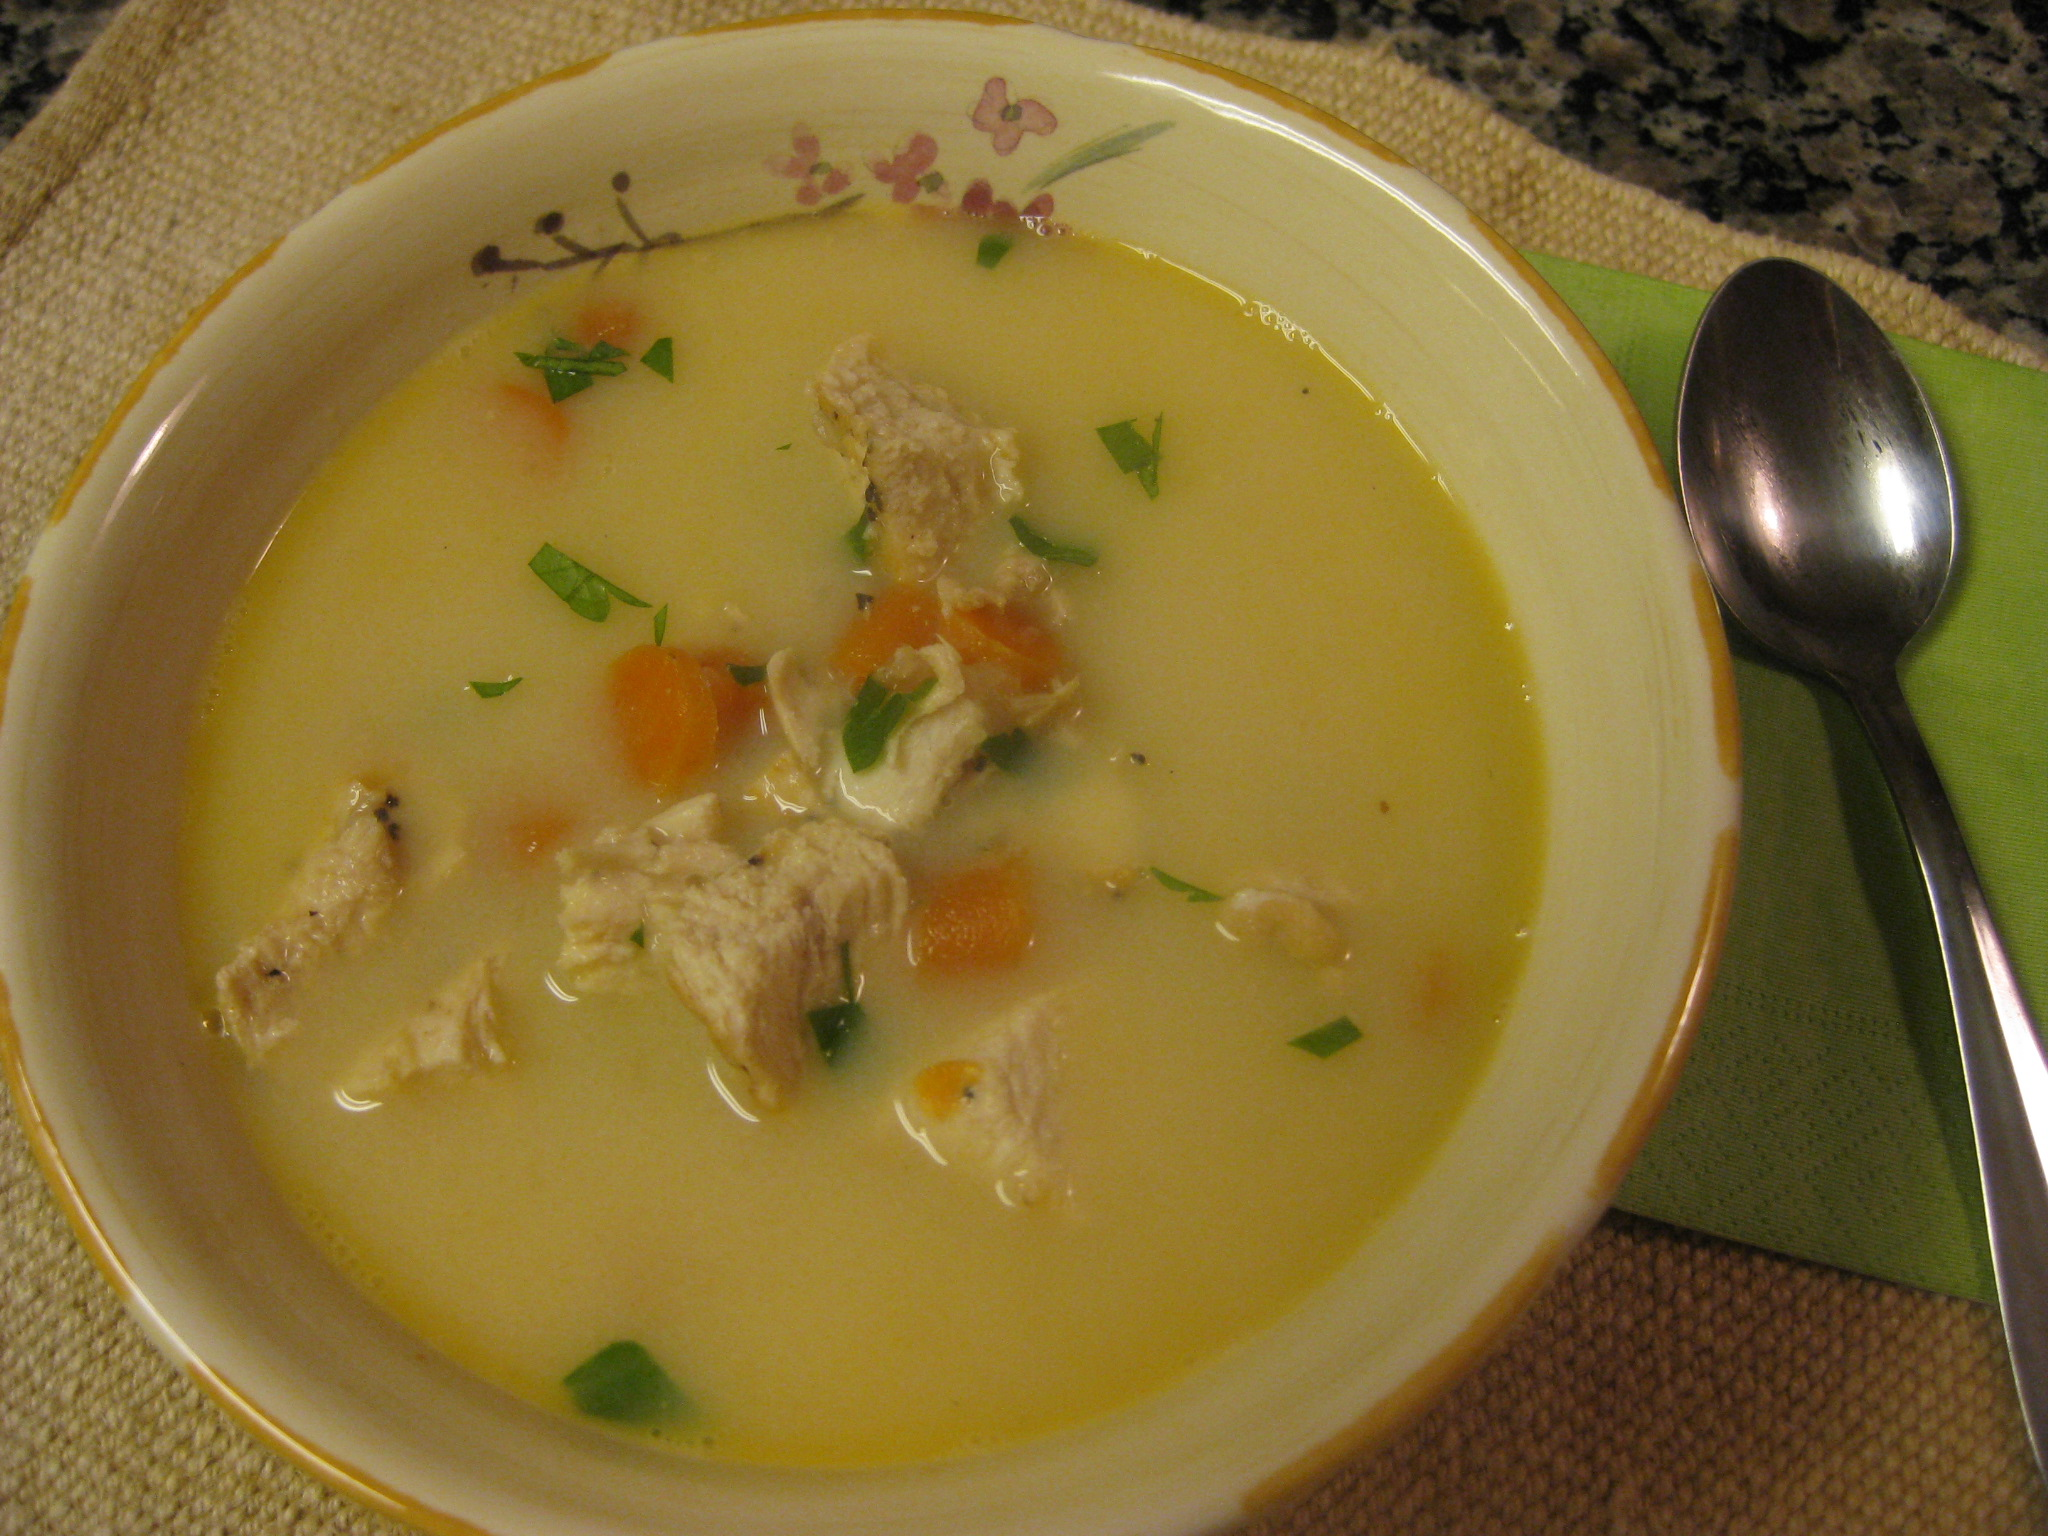 Lemon Chicken Soup Savoring Every Bite